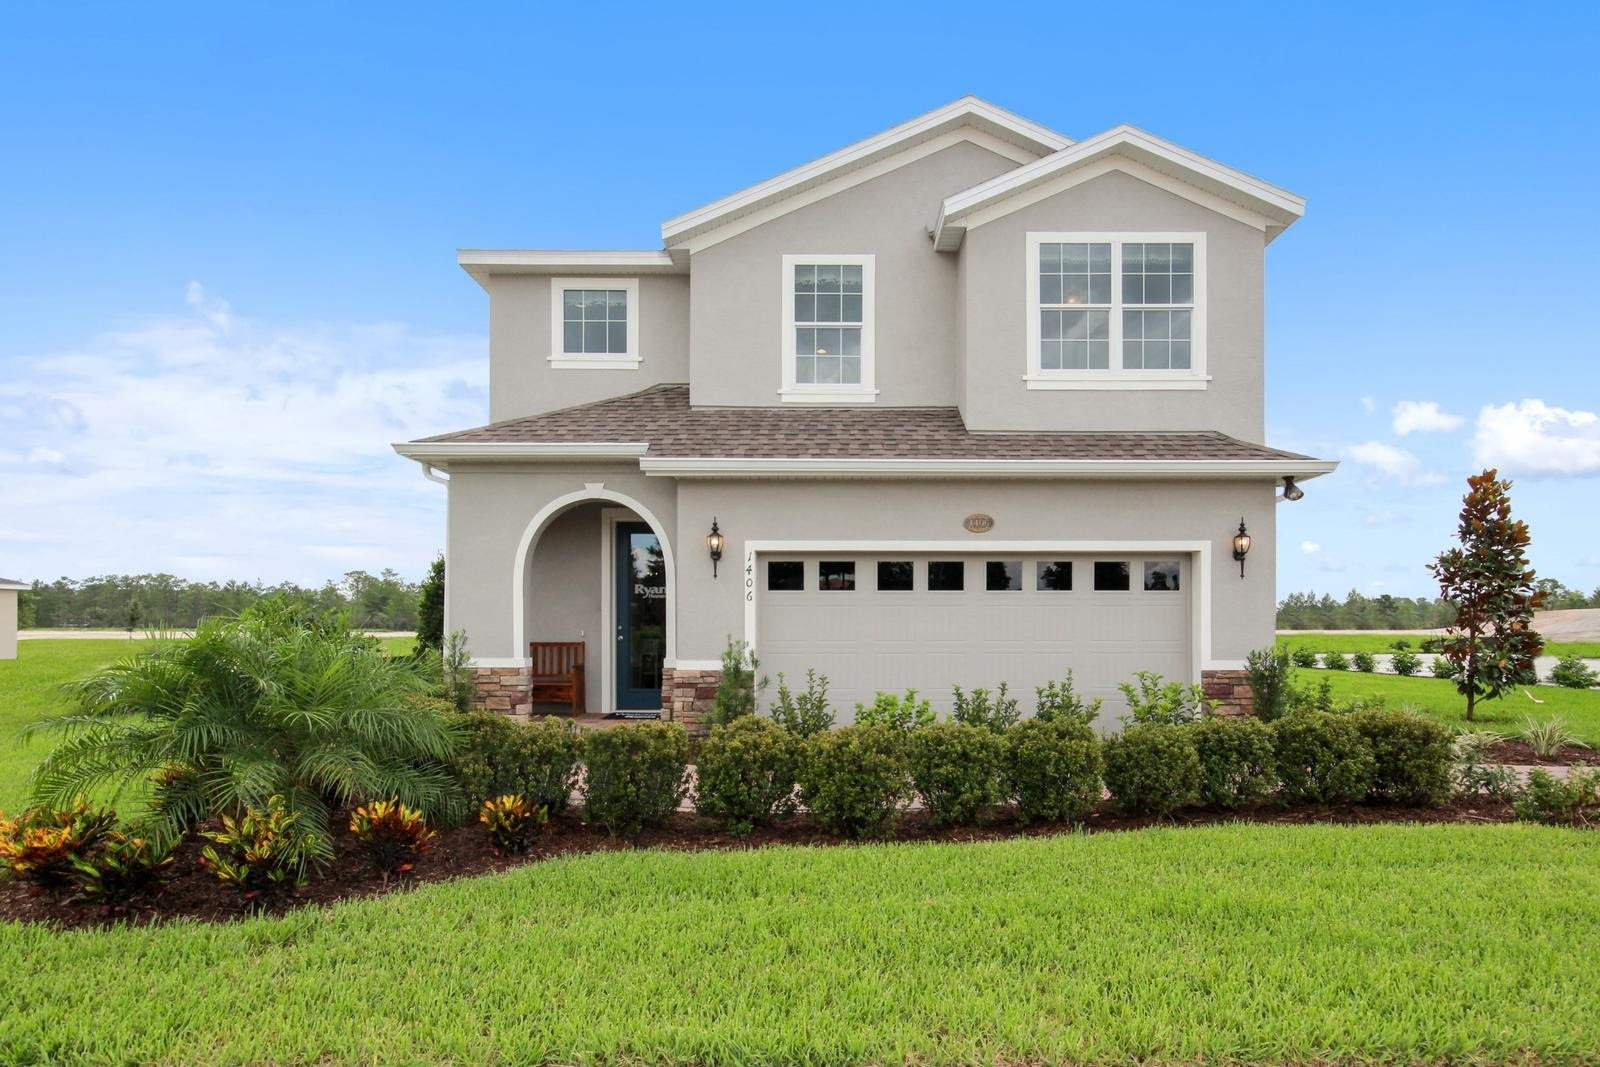 Swell New Construction Single Family Homes For Sale Doral Ryan Homes Download Free Architecture Designs Intelgarnamadebymaigaardcom